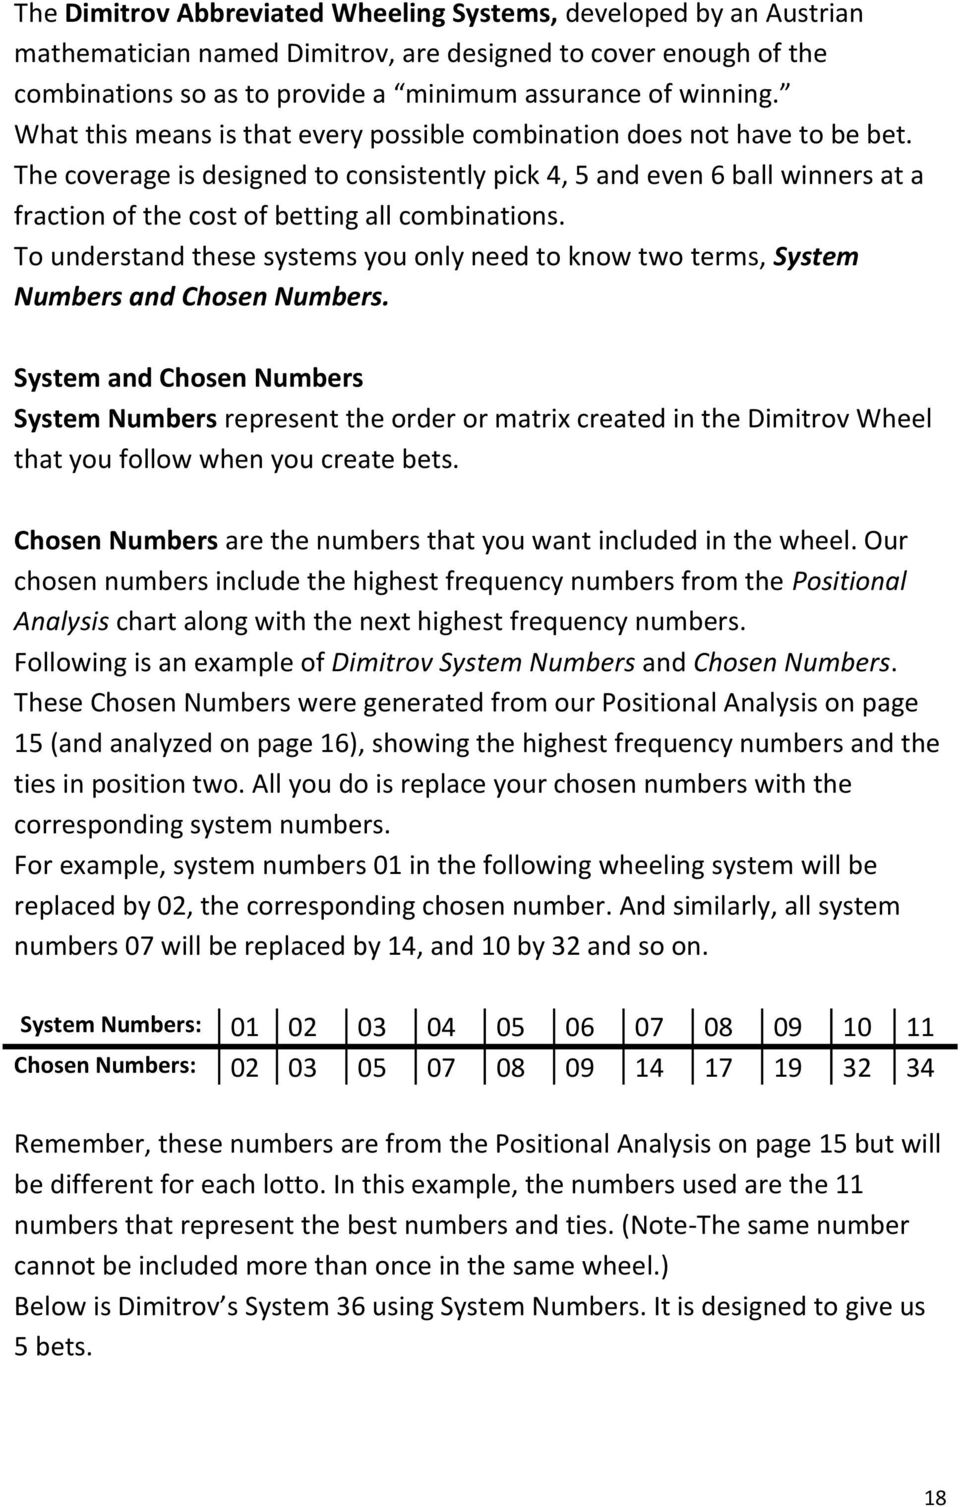 To understand these systems you only need to know two terms, System Numbers and Chosen Numbers.